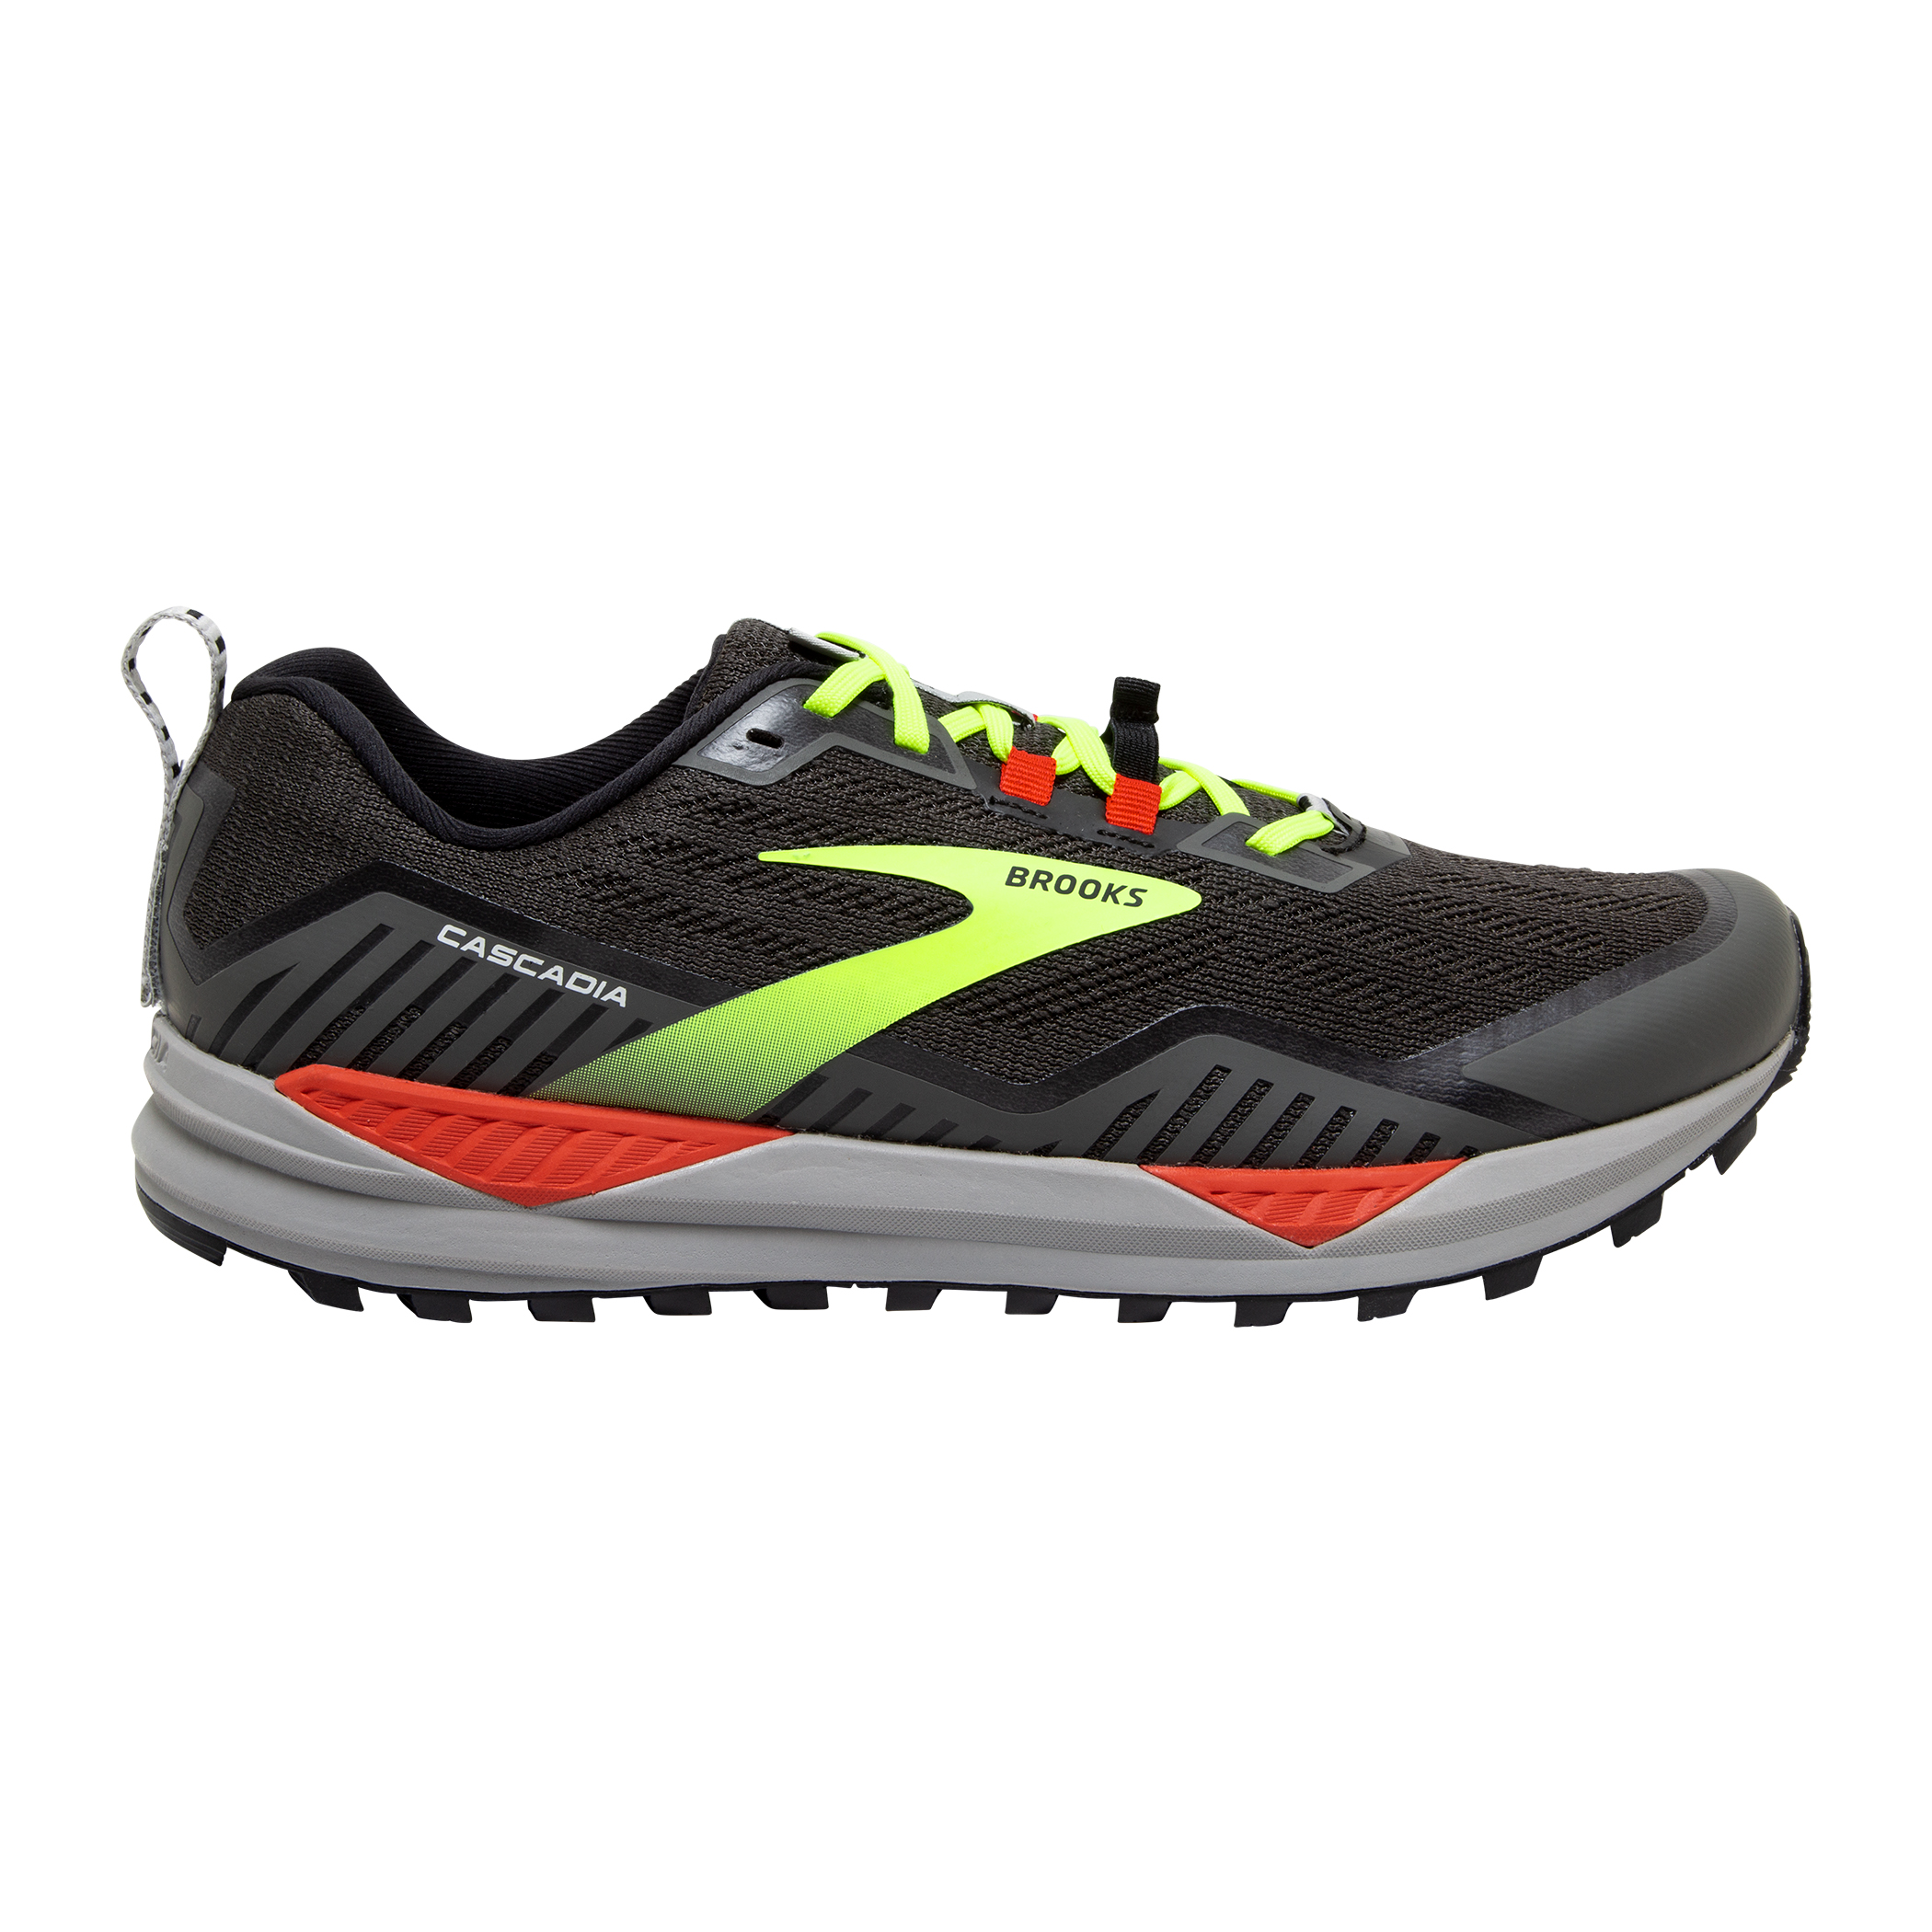 Men's Brooks Cascadia 15